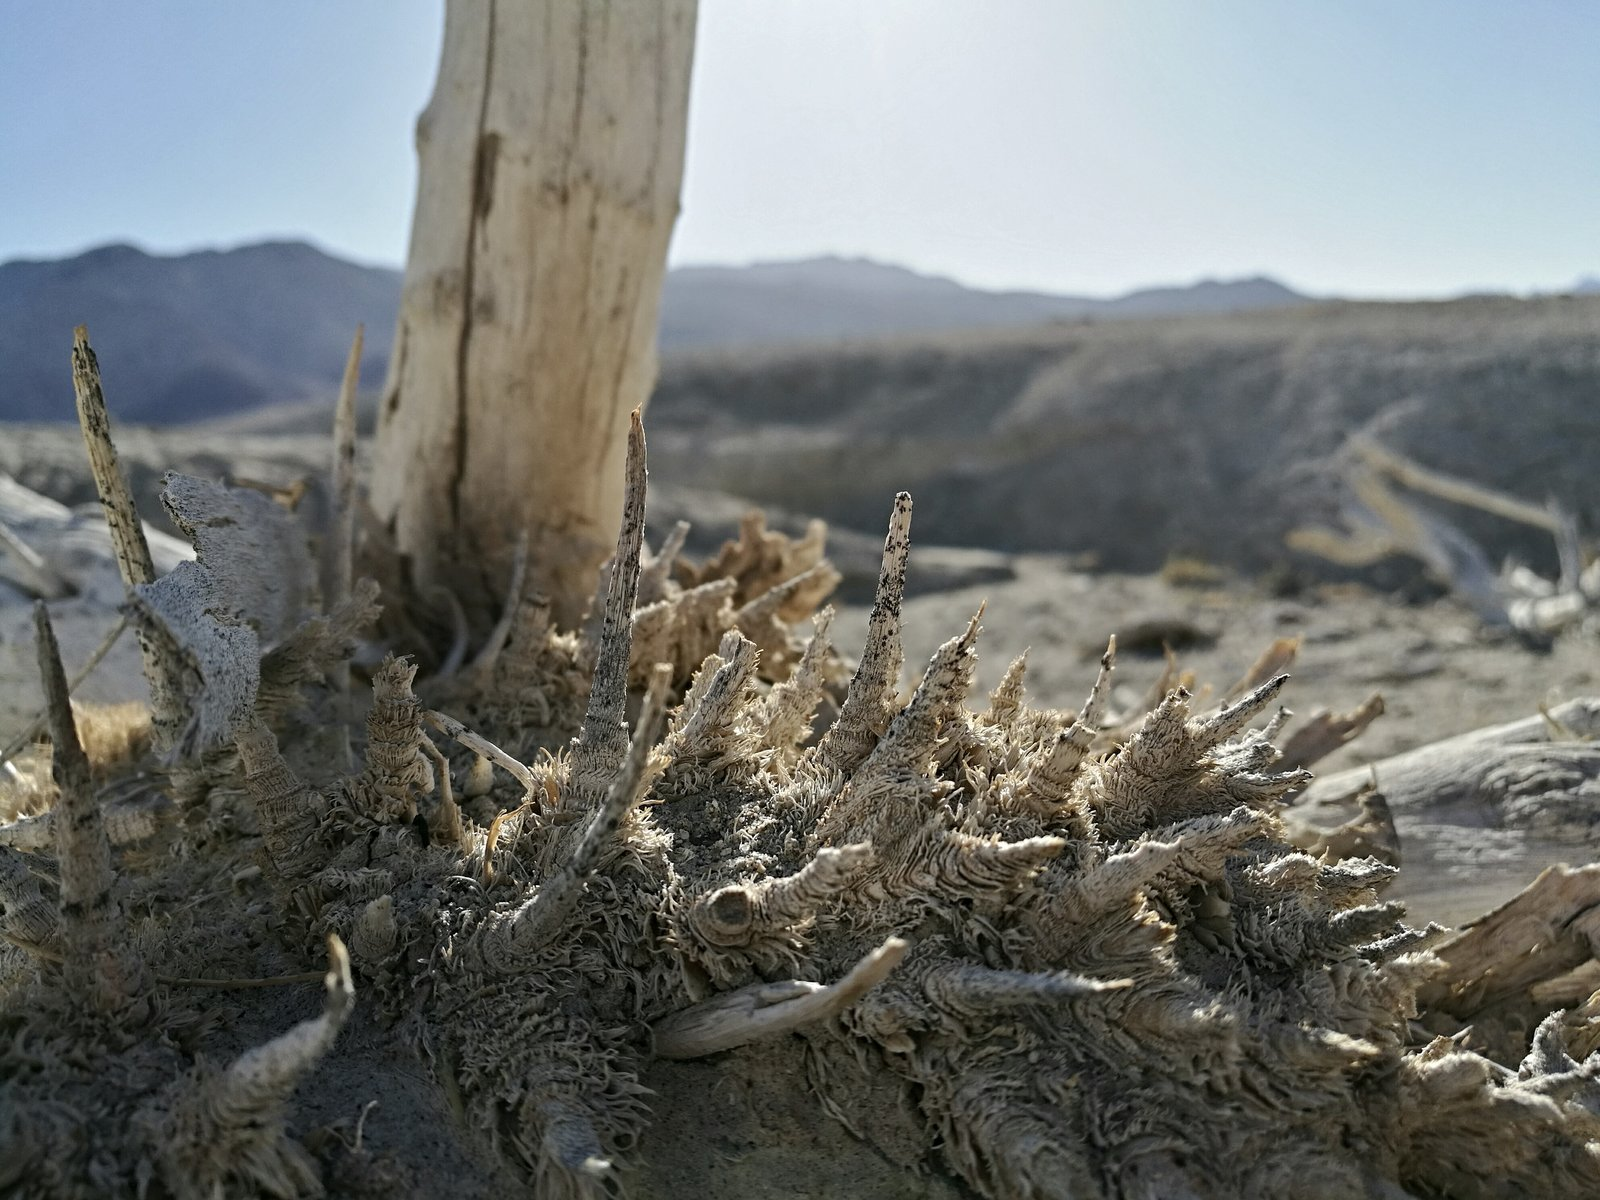 img_20170420_220643-jpg.37810_Where my Heart Lives; Dakotas to Death Valley_Travel Stories_Squat the Planet_10:07 AM